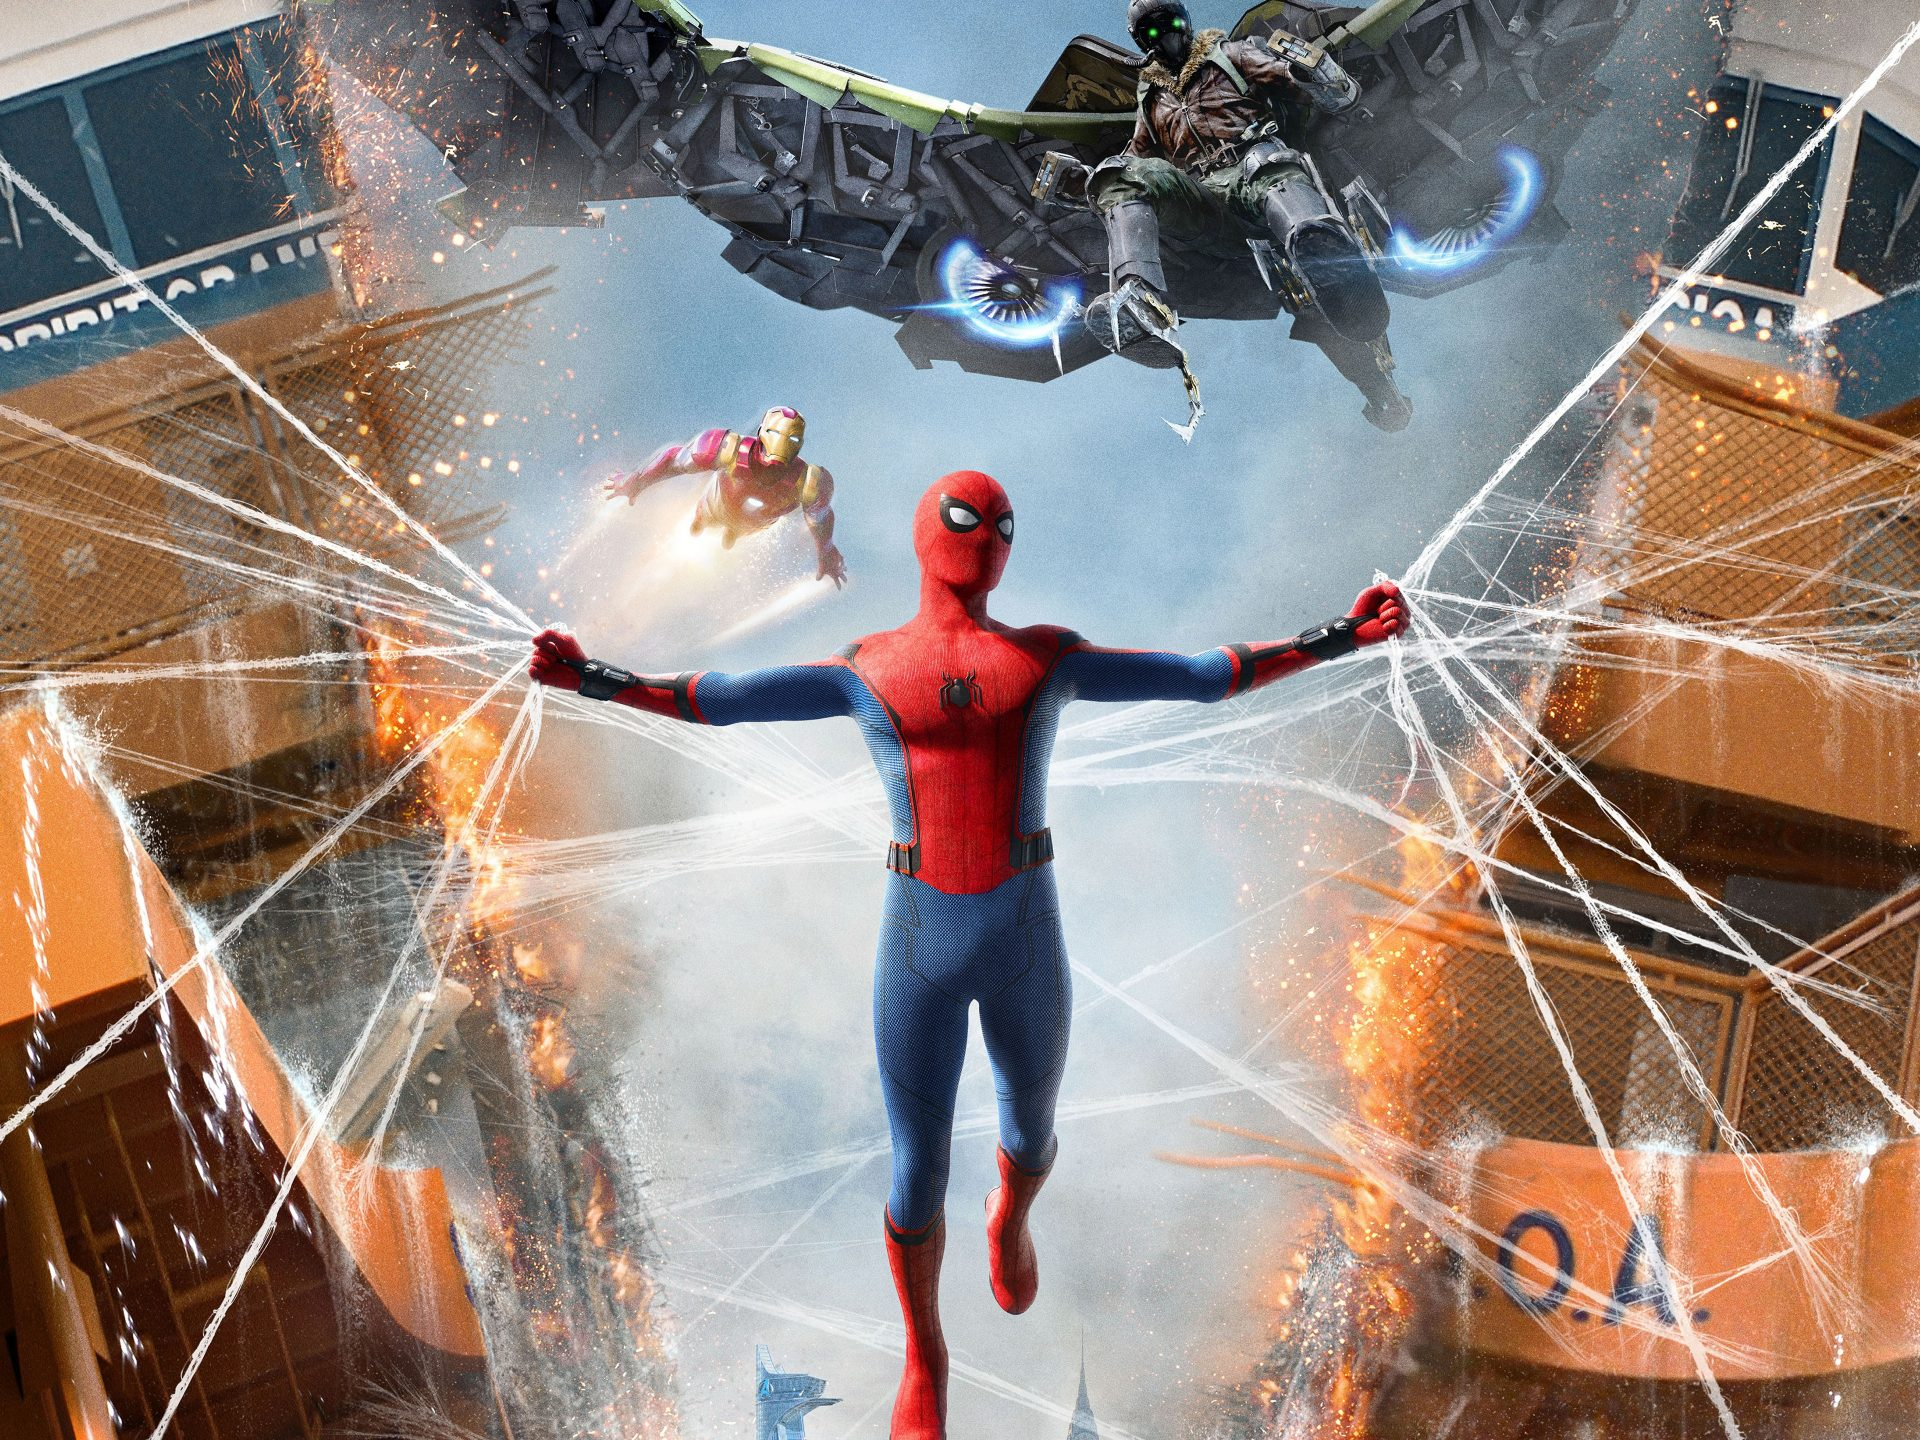 Spider Man Image Download: Download HD Wallpaper For Free